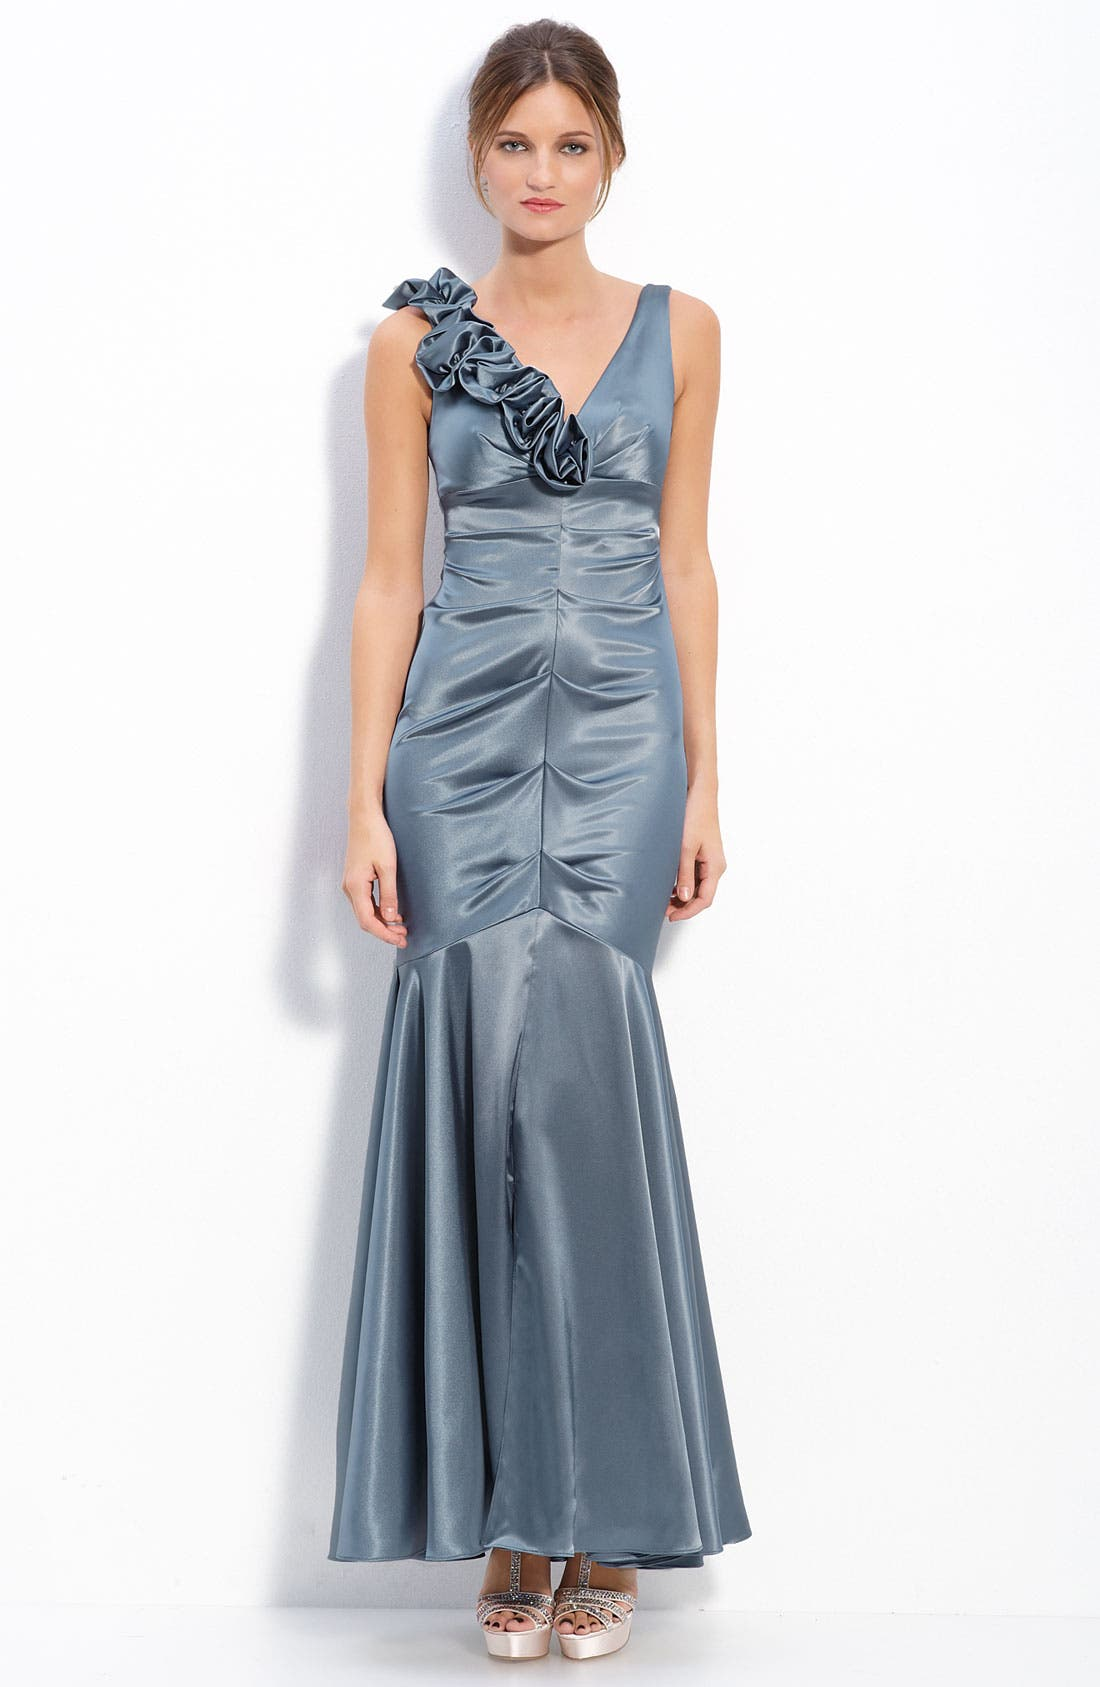 Alternate Image 1 Selected - Xscape Floral Ruffle Stretch Satin Ruched Mermaid Gown